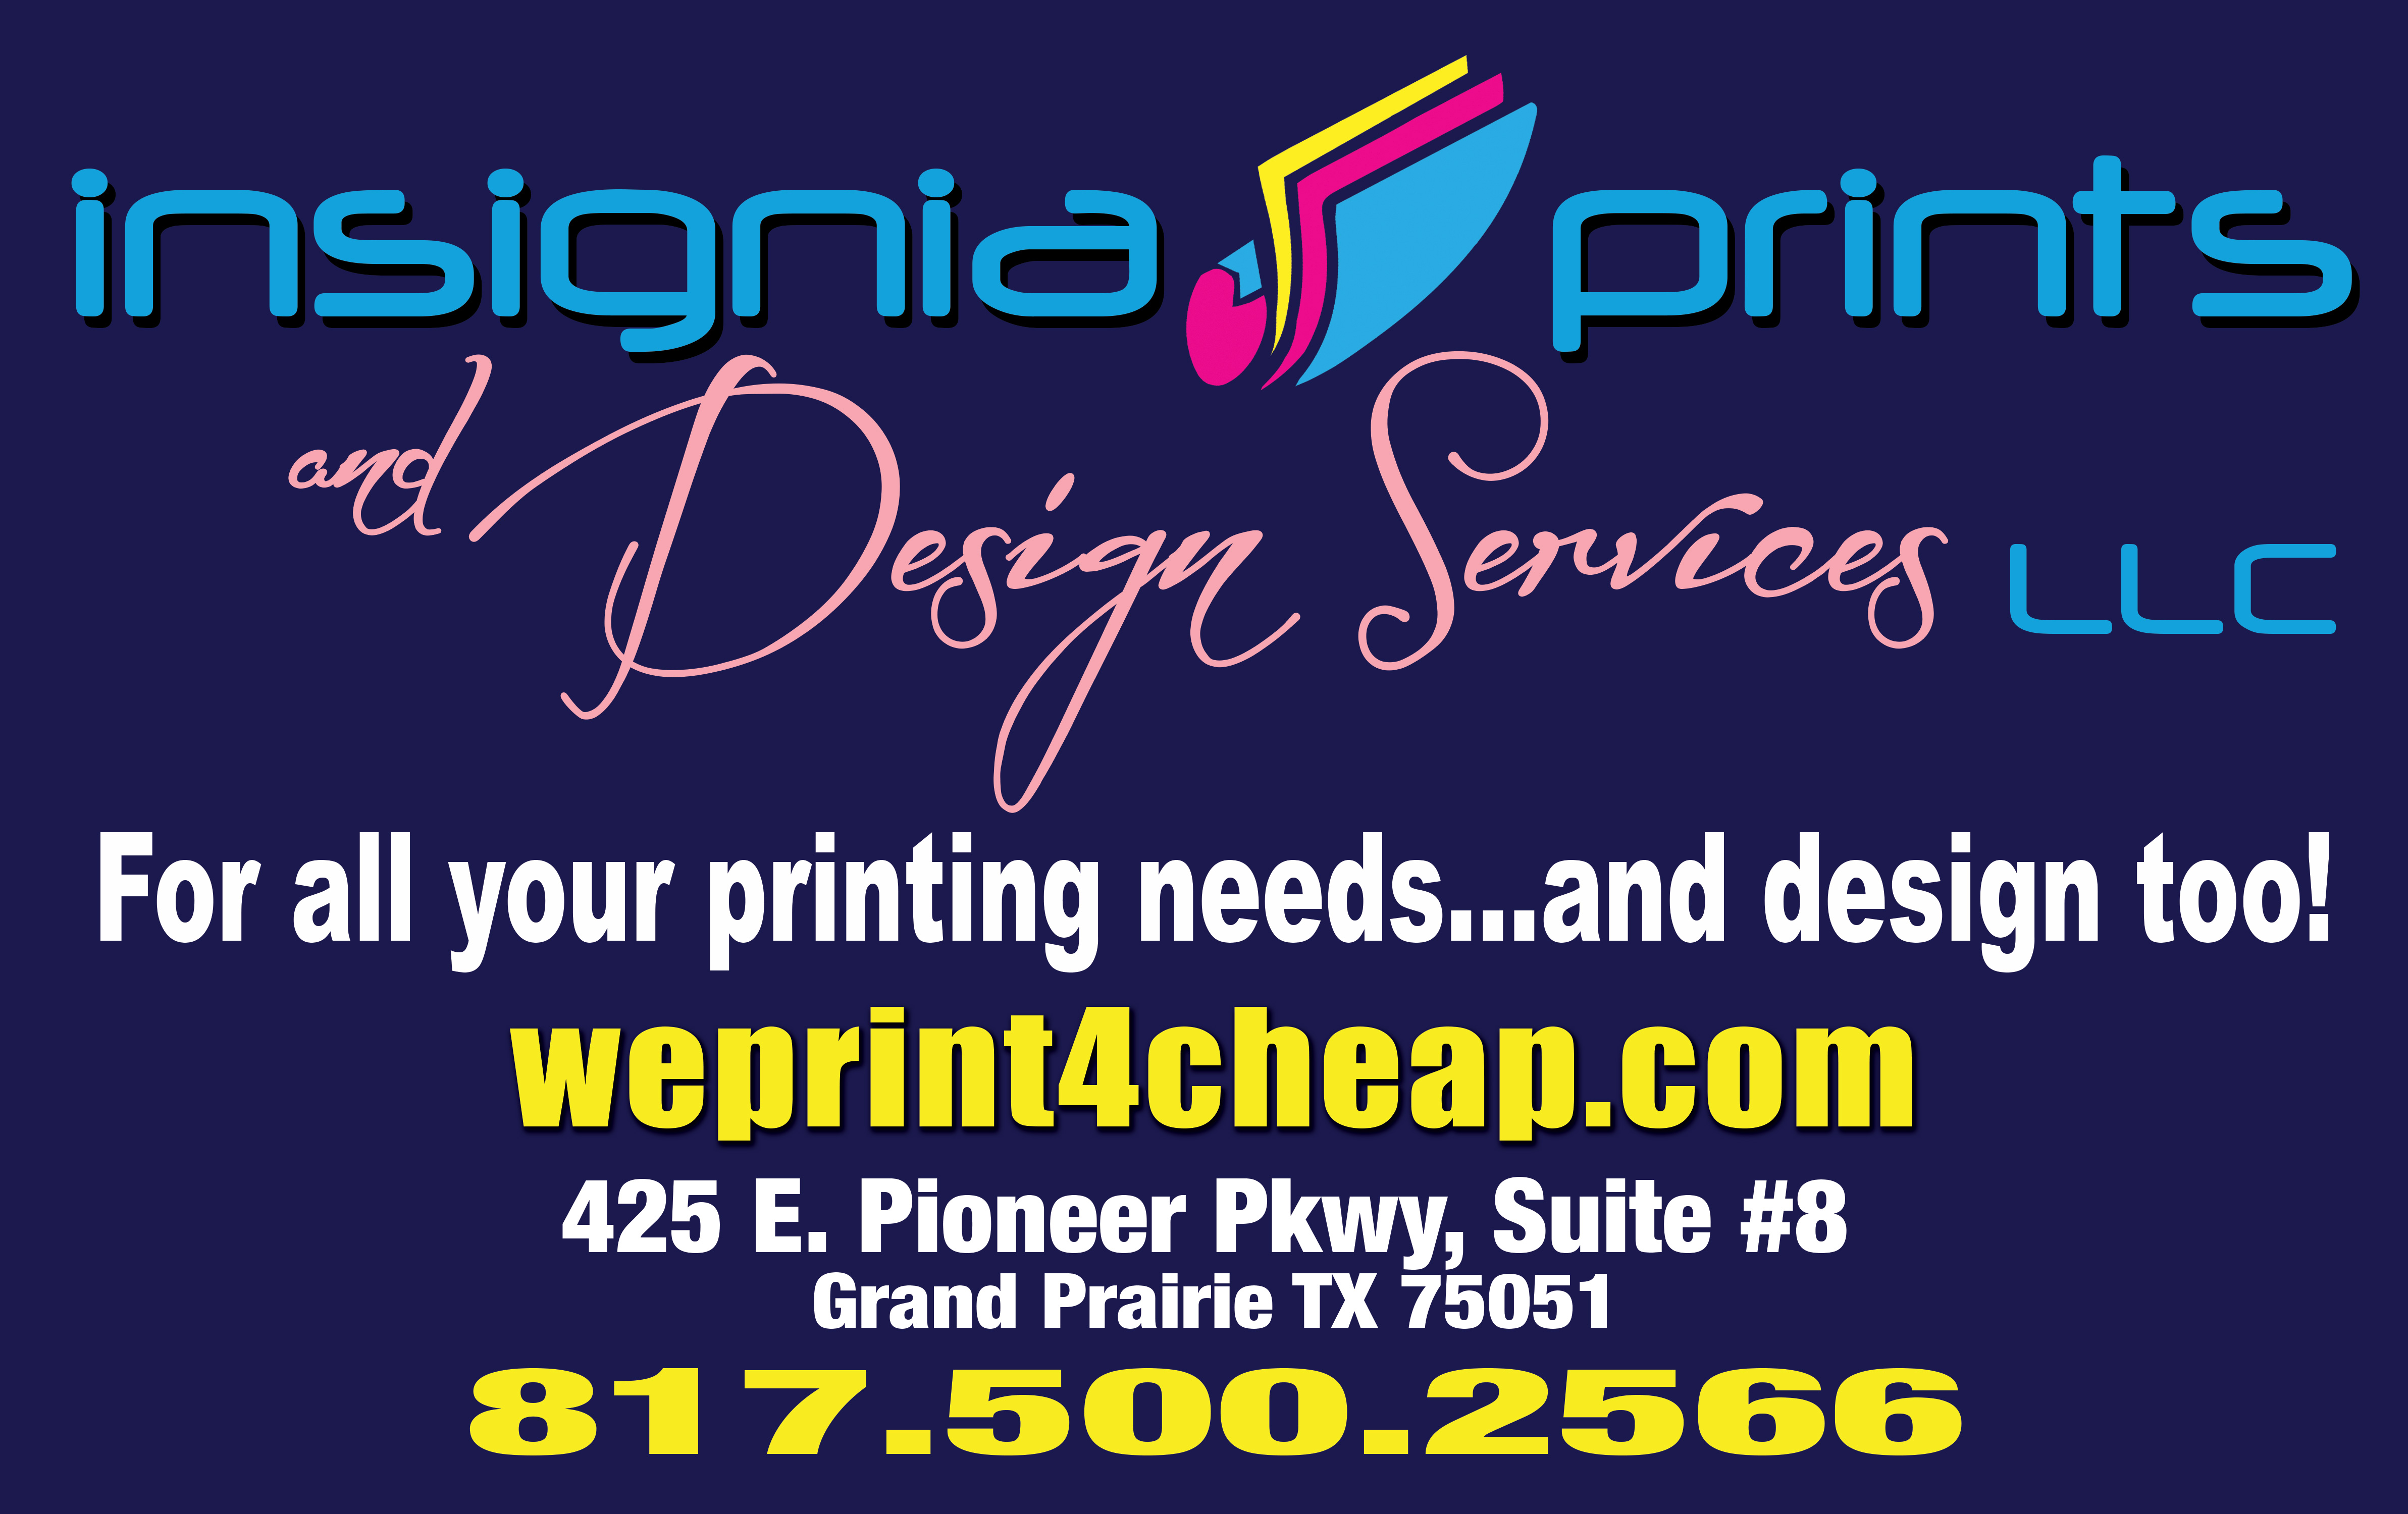 Insignia Prints and Design Services LLC Grand Prairie TX